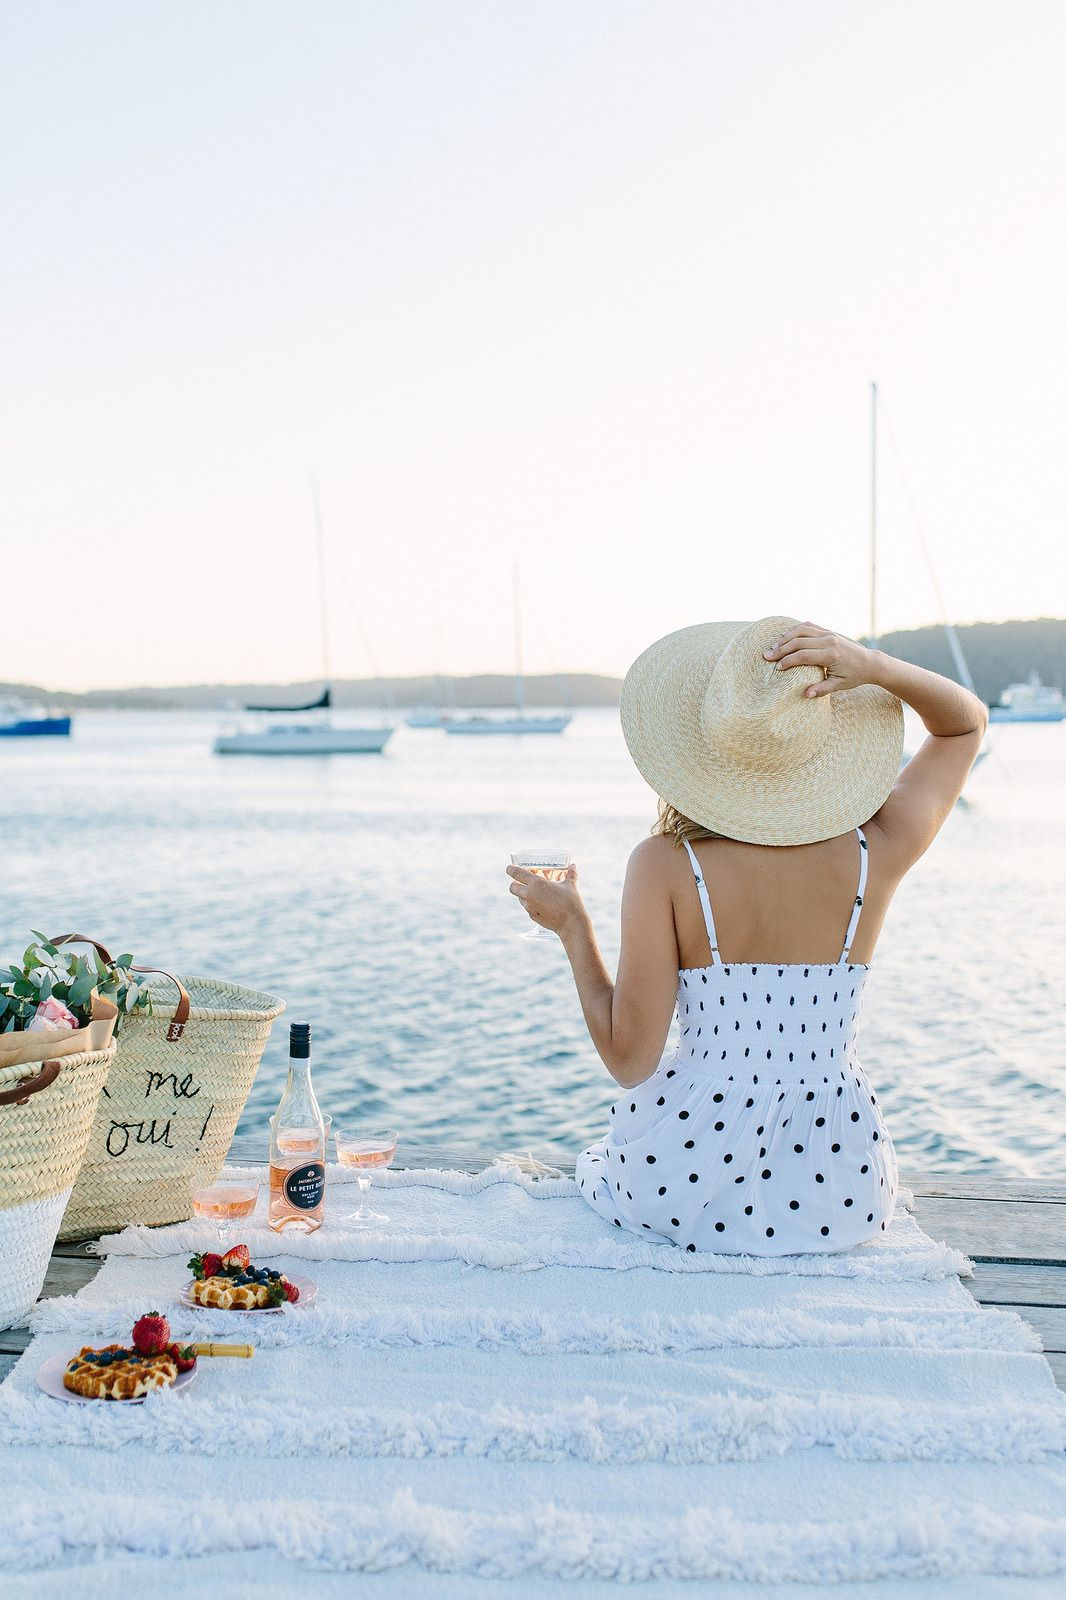 Sunset picnic and rosé you me qui with the diy embroidered tote jpg  1066x1600 Beach picnic 06f1a306e9d31